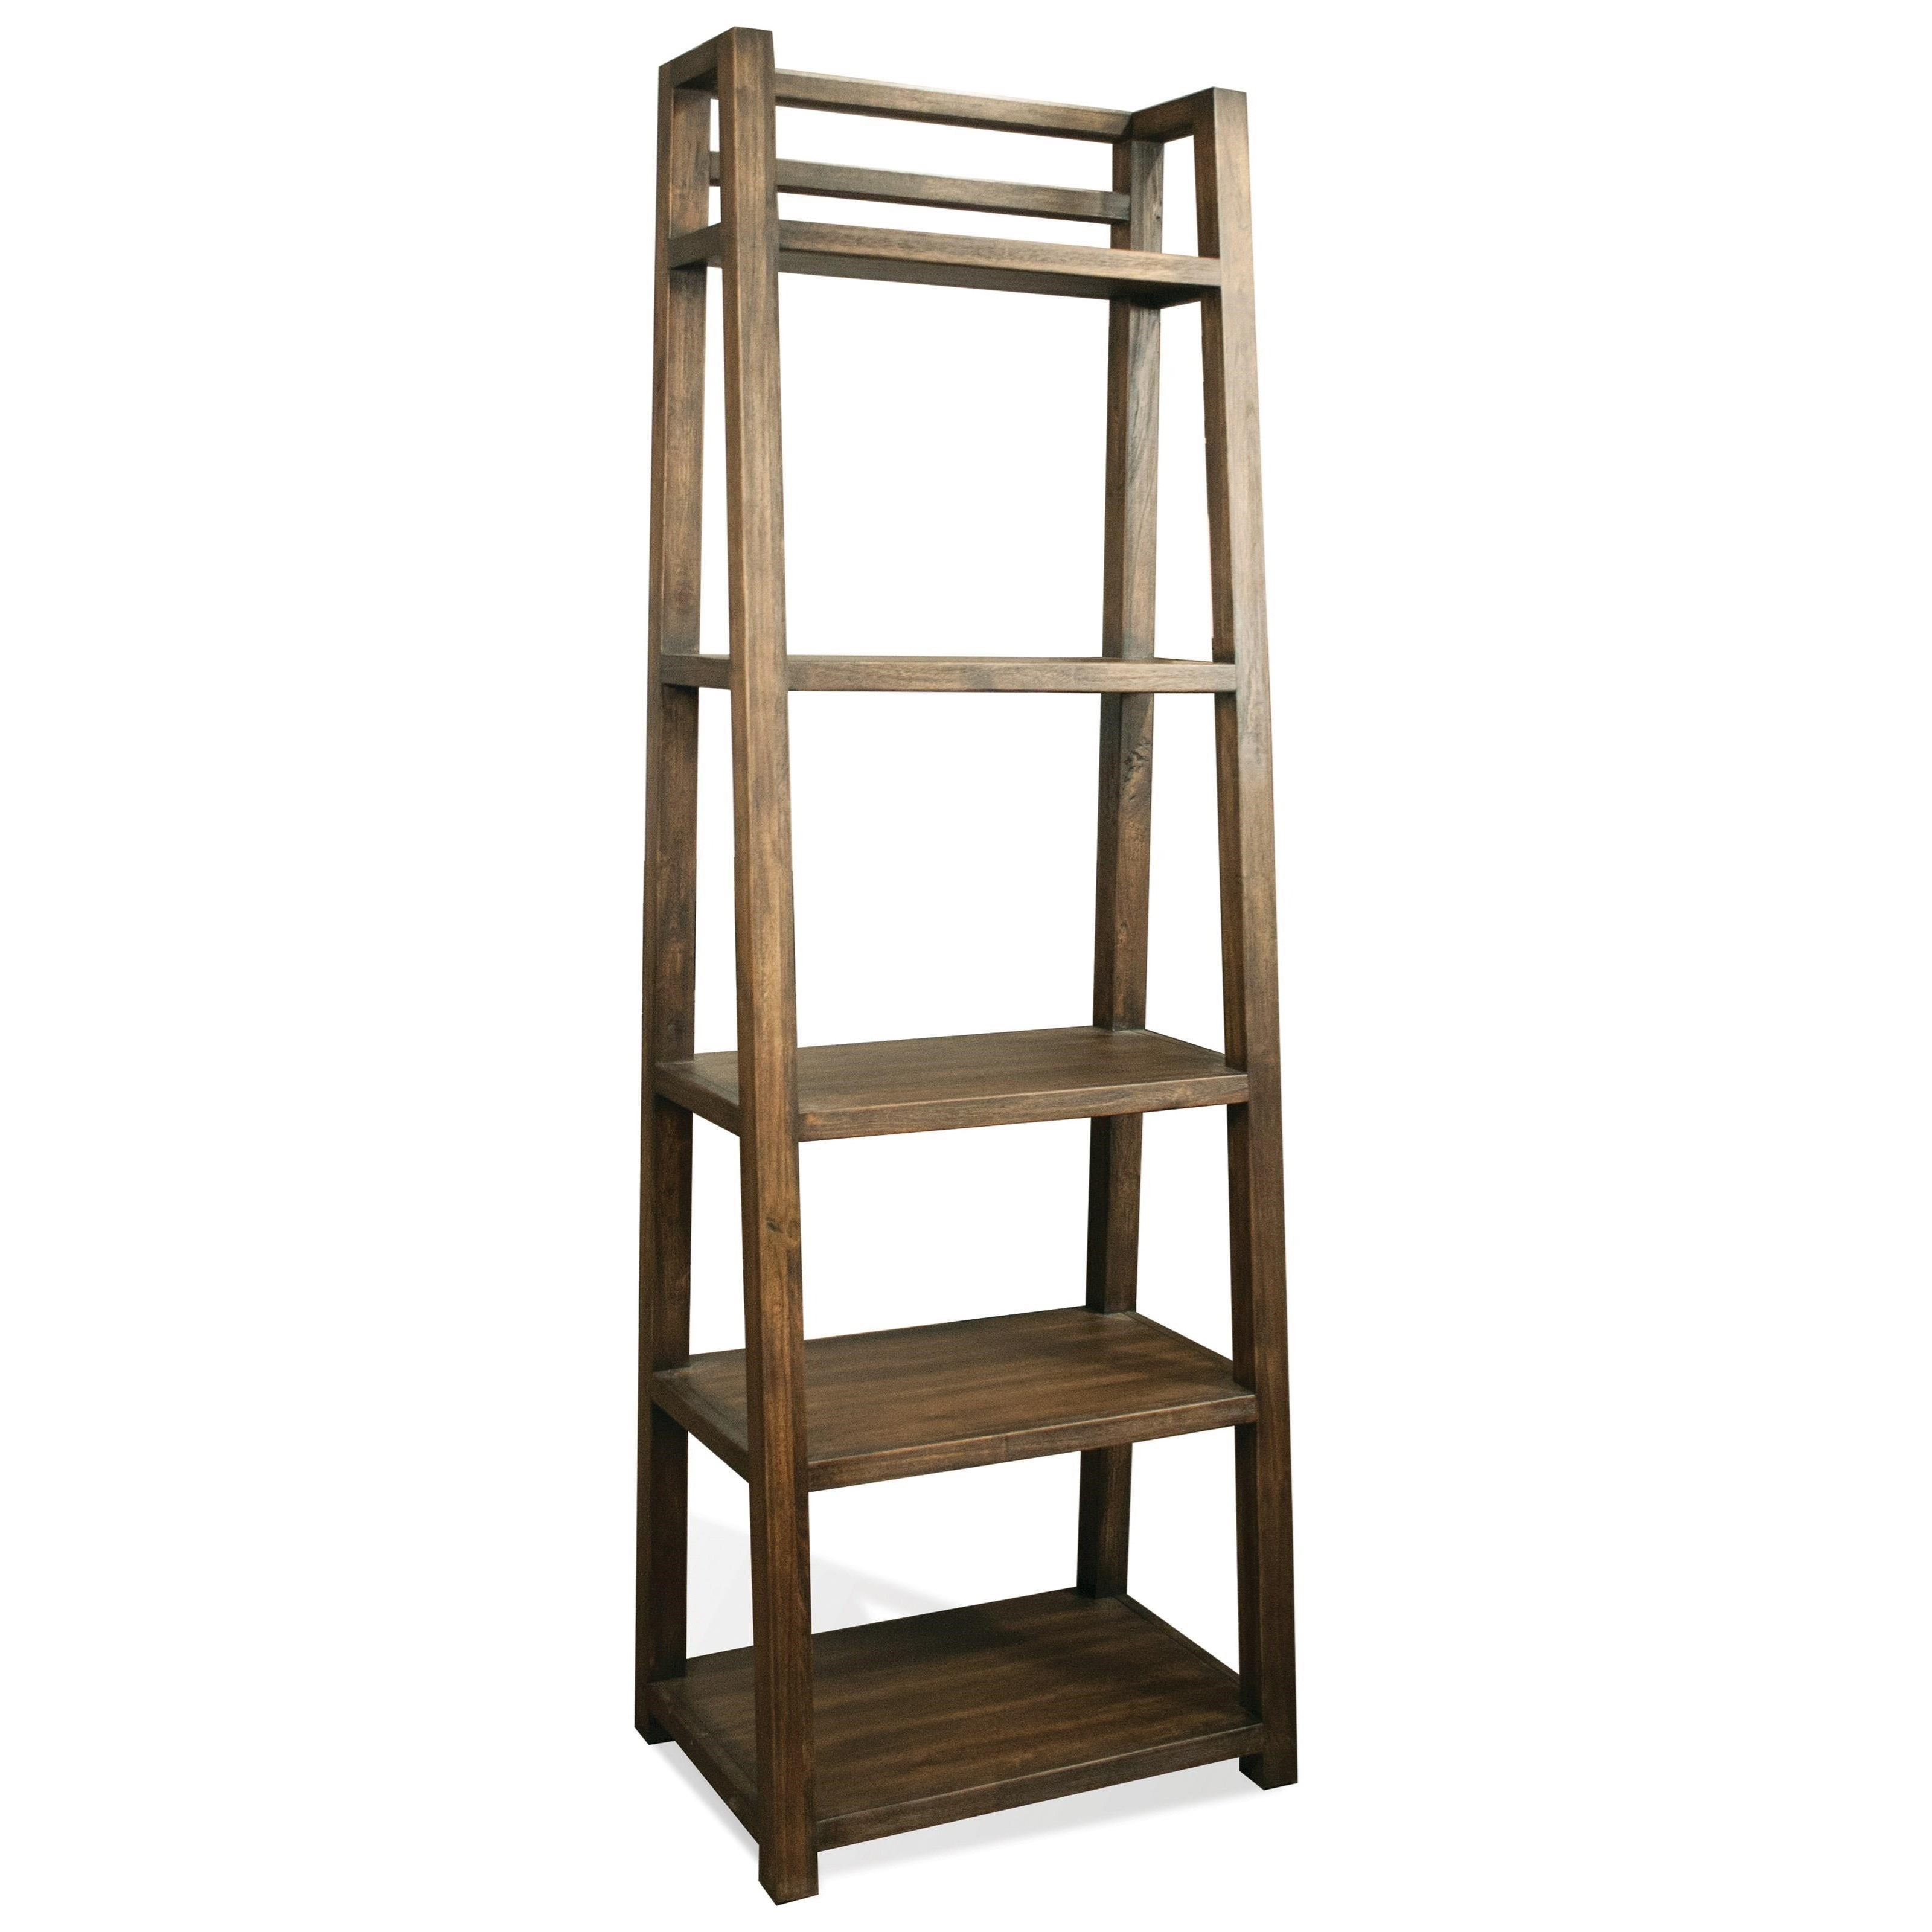 Perspectives Leaning Bookcase by Riverside Furniture at Darvin Furniture